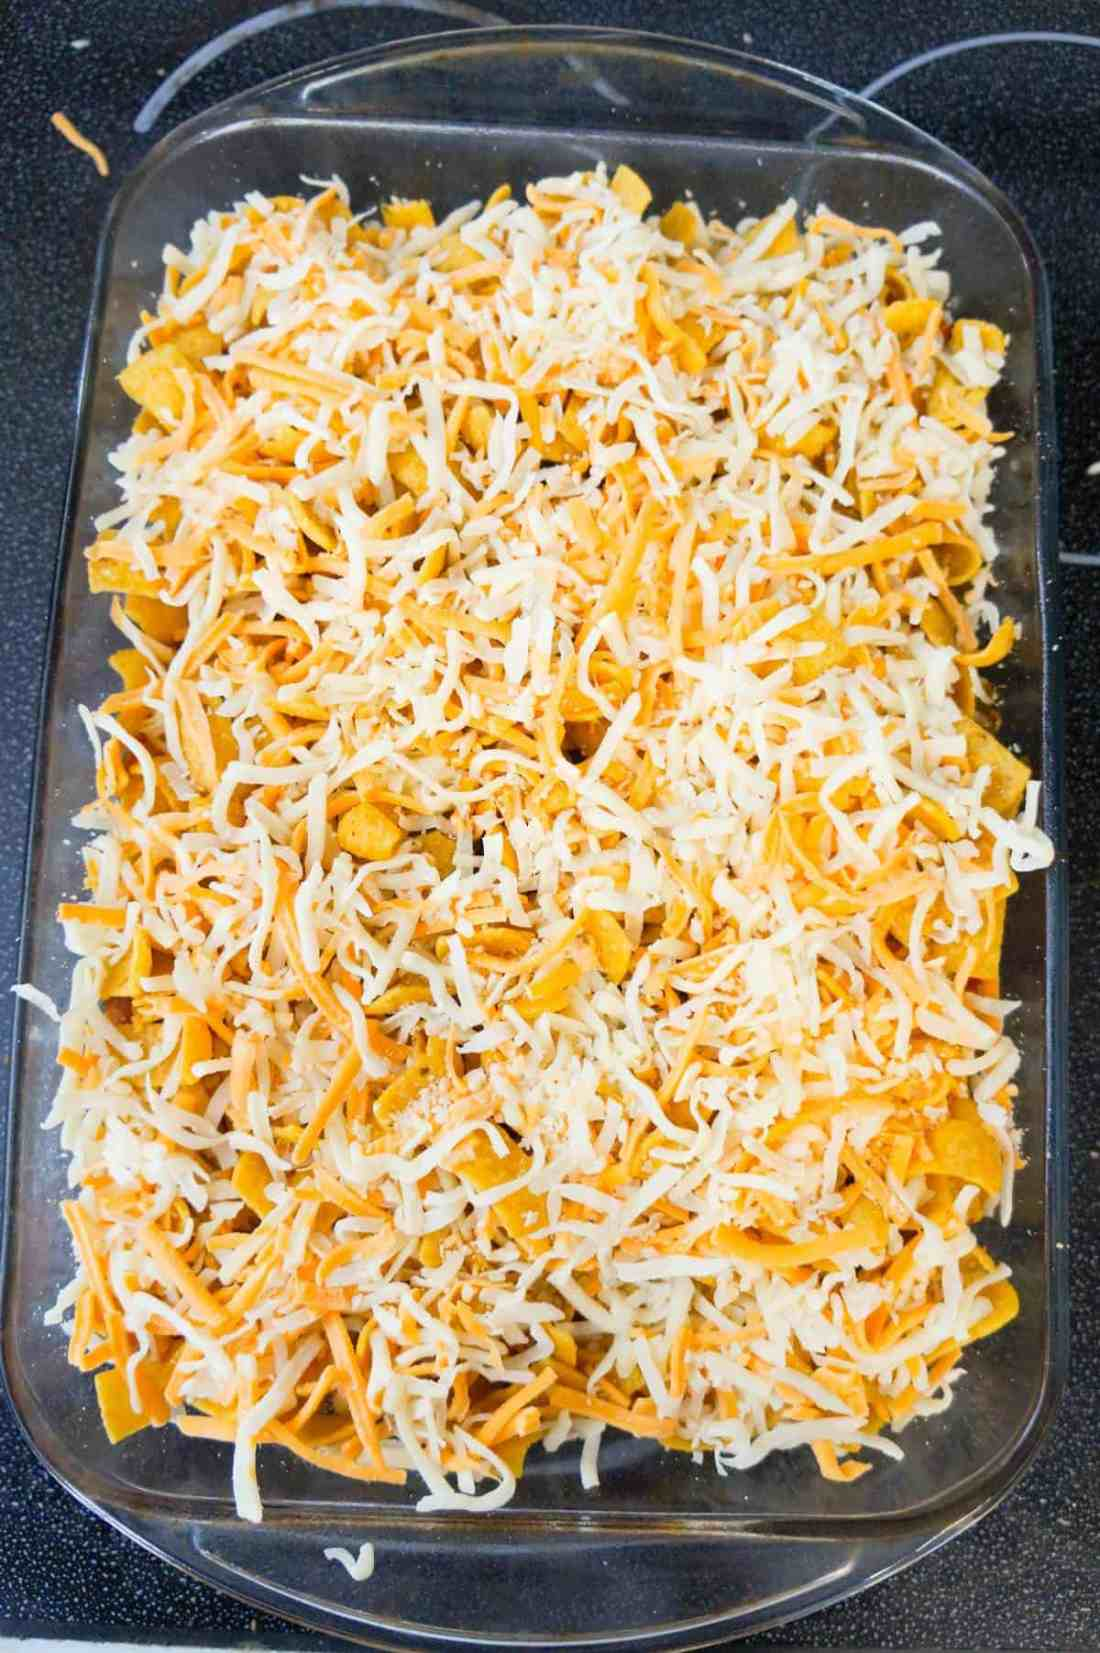 shredded mozzarella and cheddar cheese on top of frito pie